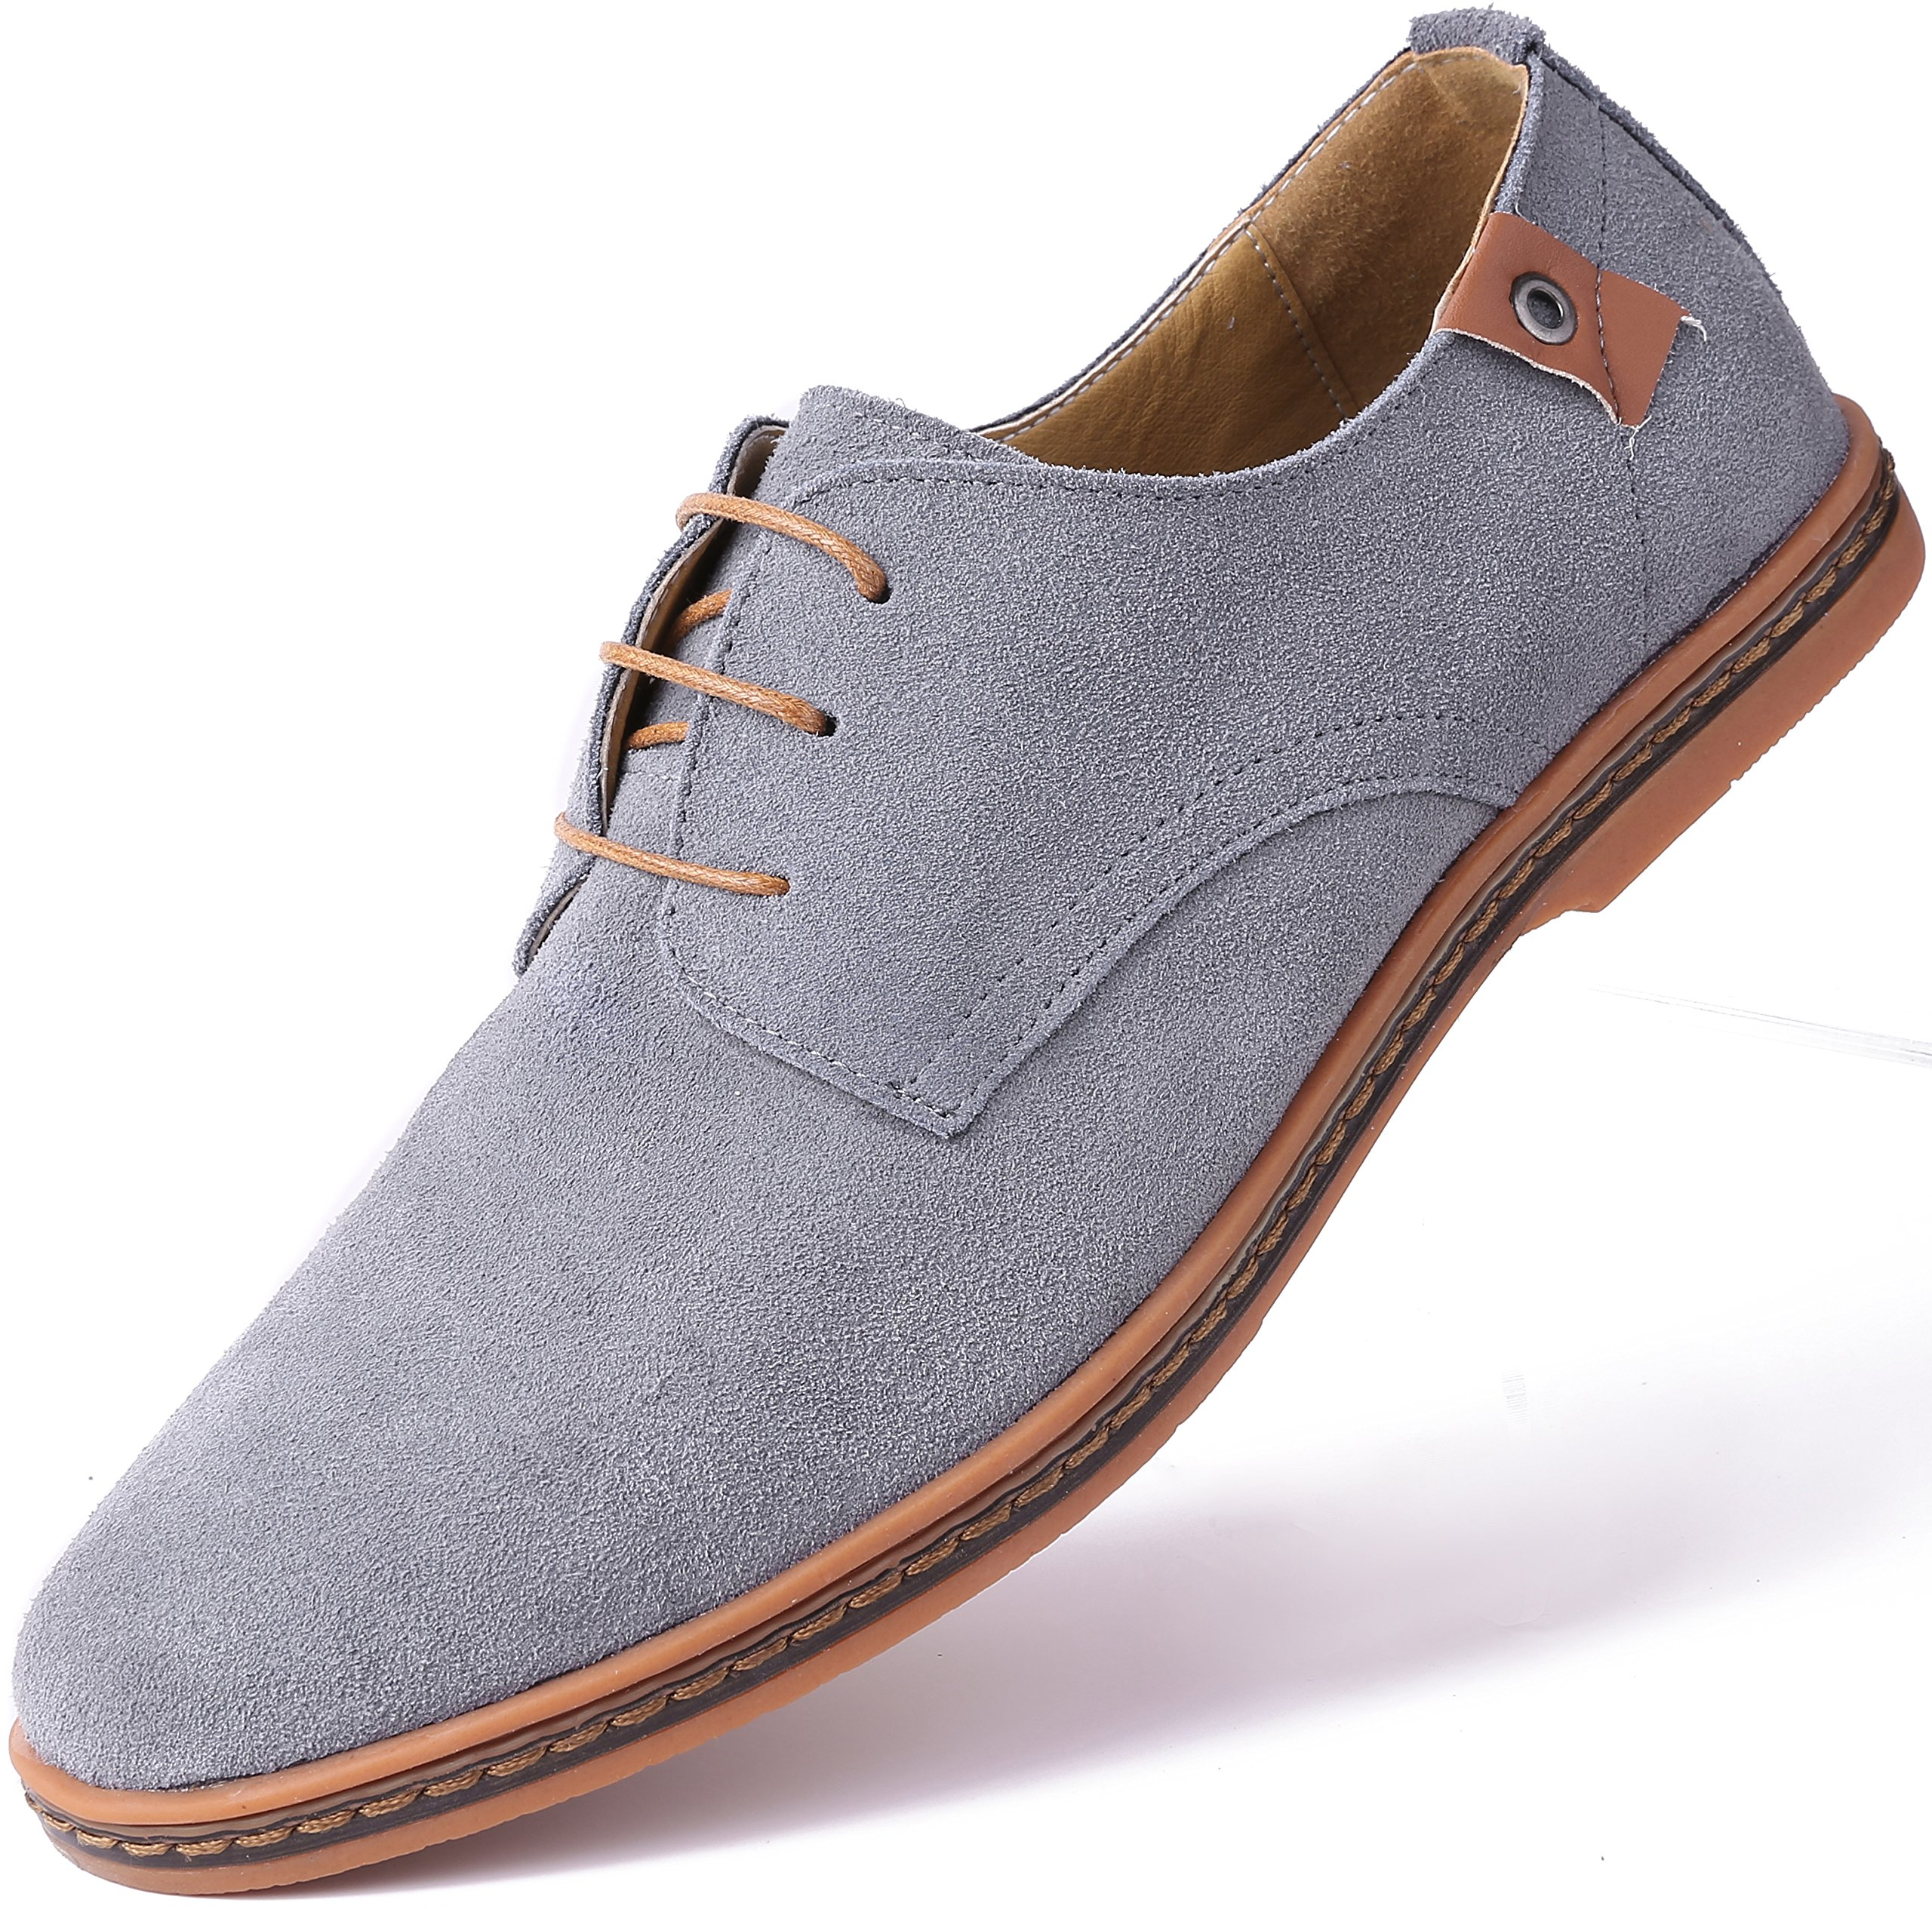 Marino Suede Oxford Dress Shoes for Men - Business Casual Shoes (10.5 D(M) US, Light Gray)